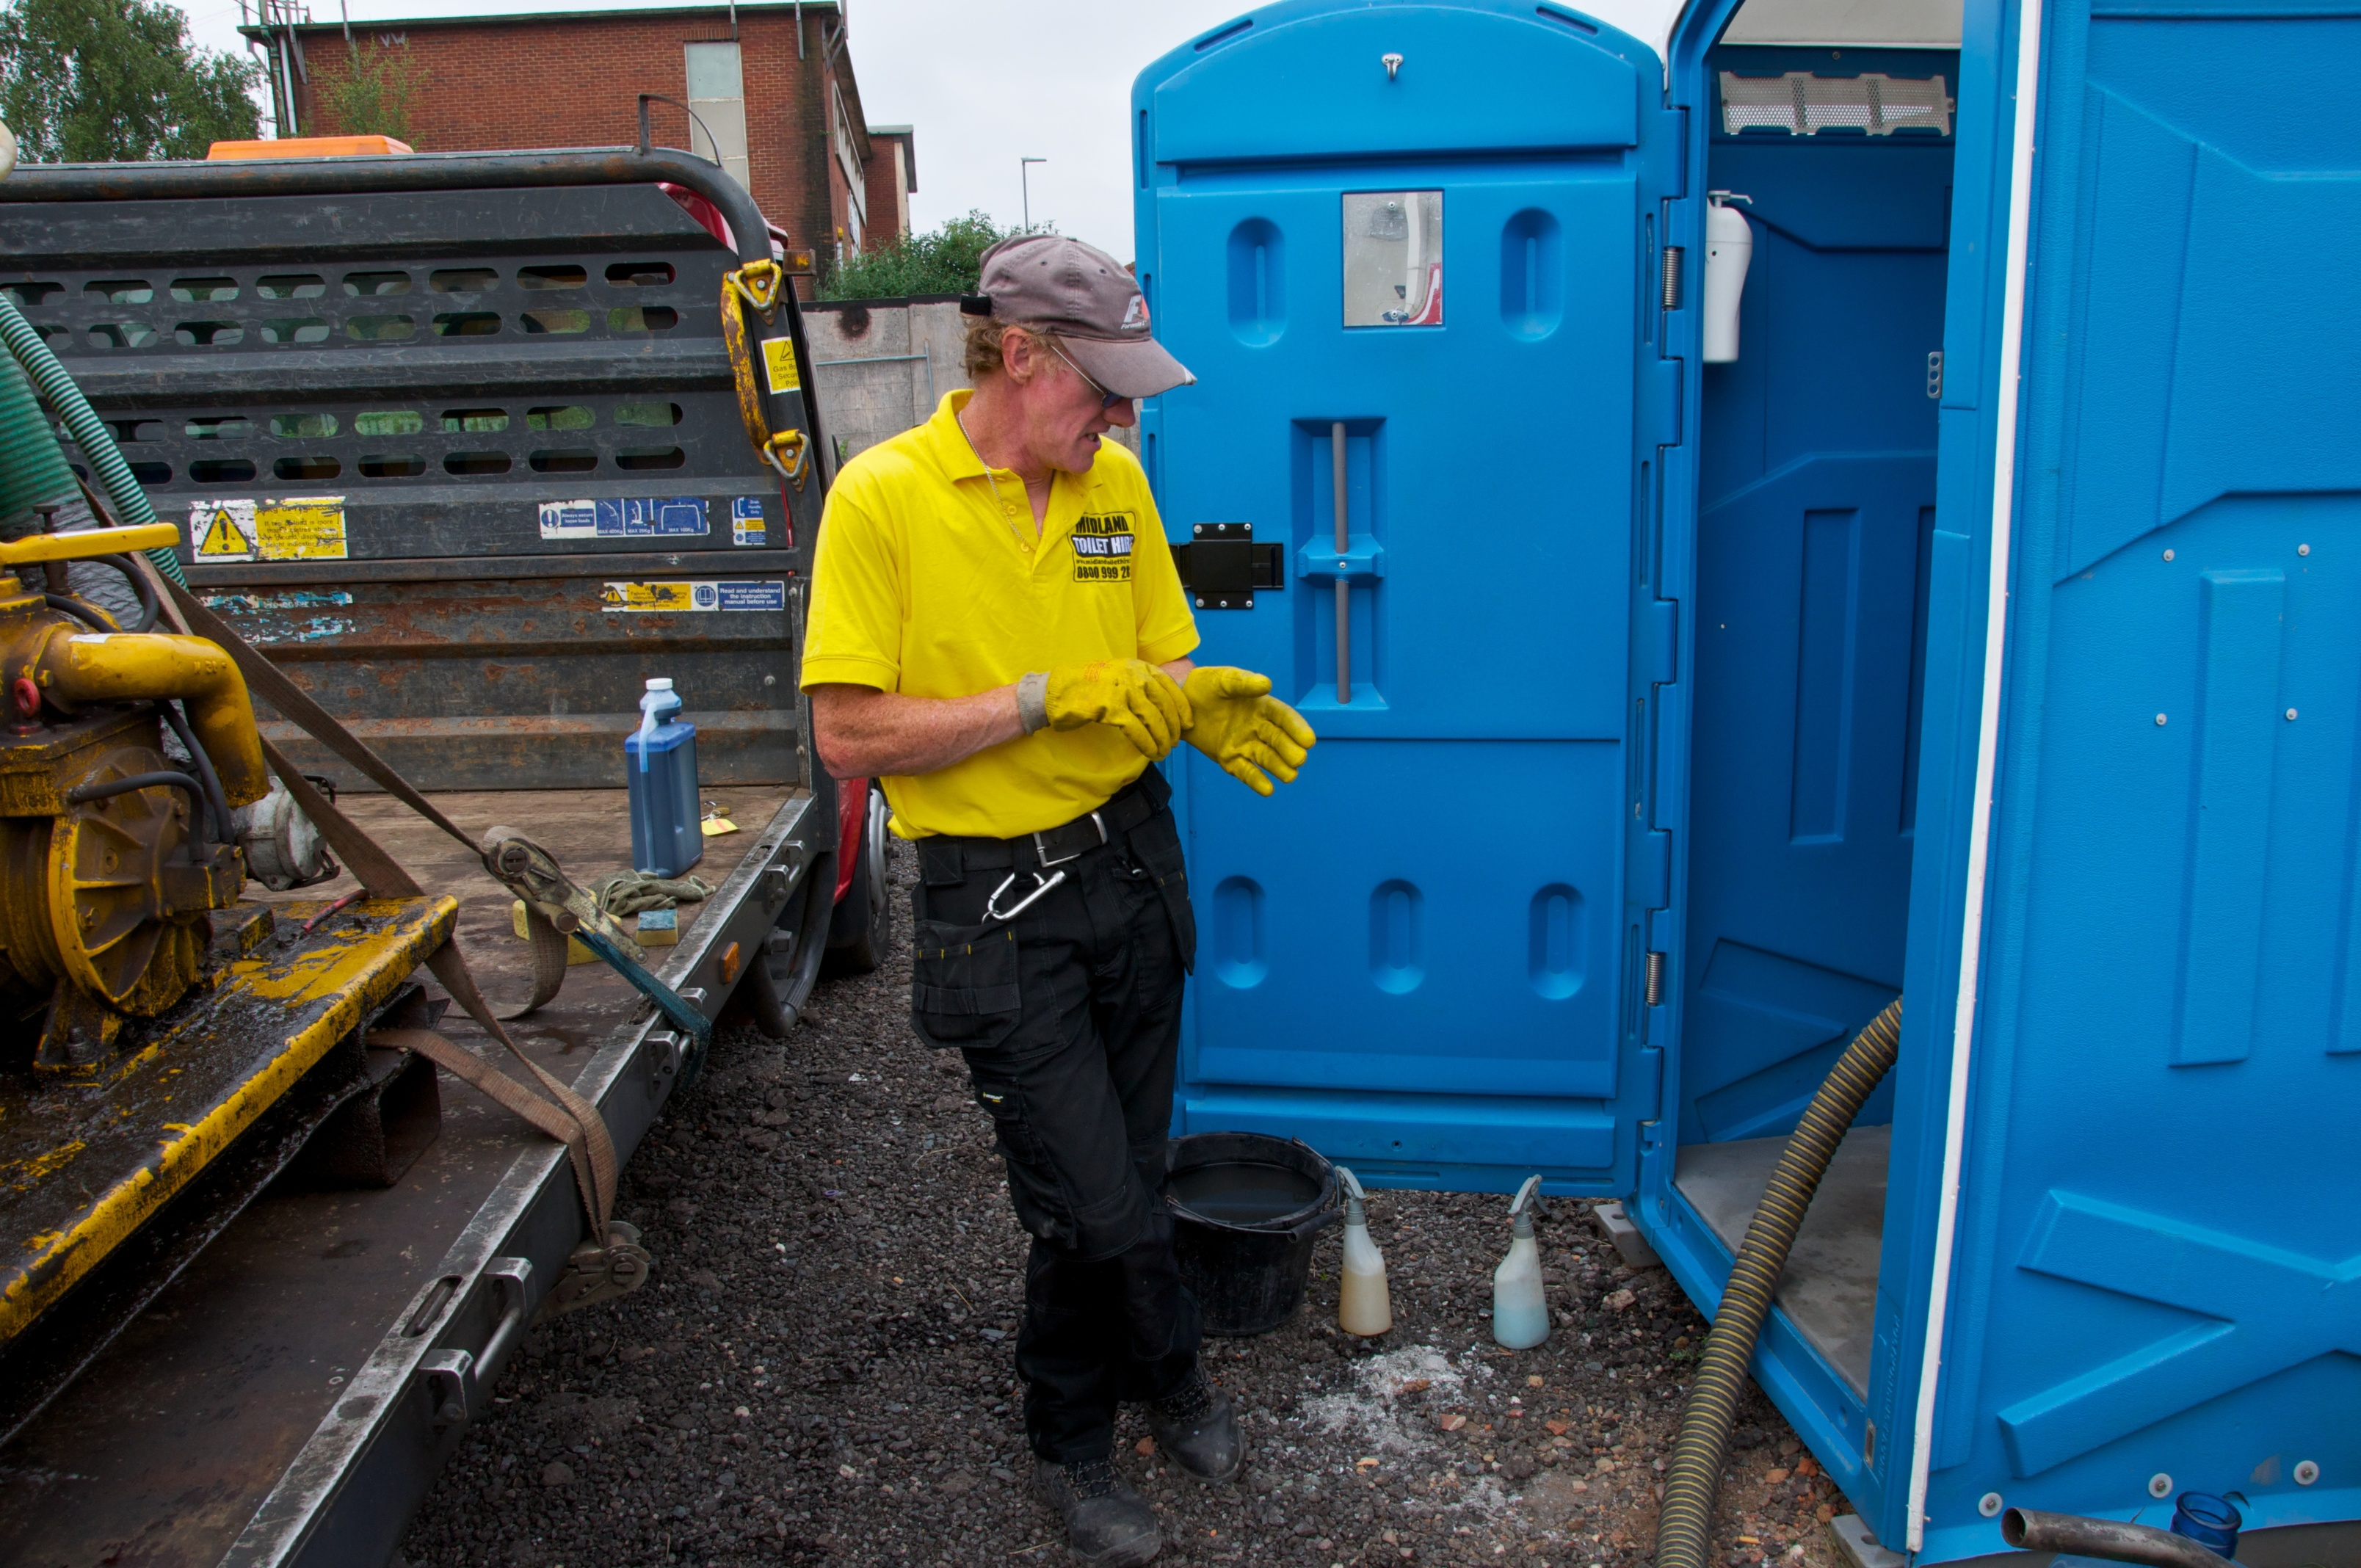 Midland Toilet Hire. Portable Toilet Hire in the West Midlands. Birmingham Toilet Hire. Wolverhamton Toilet Hire, Tamwoth Toilet Hire, Walsall Toilet Hire.